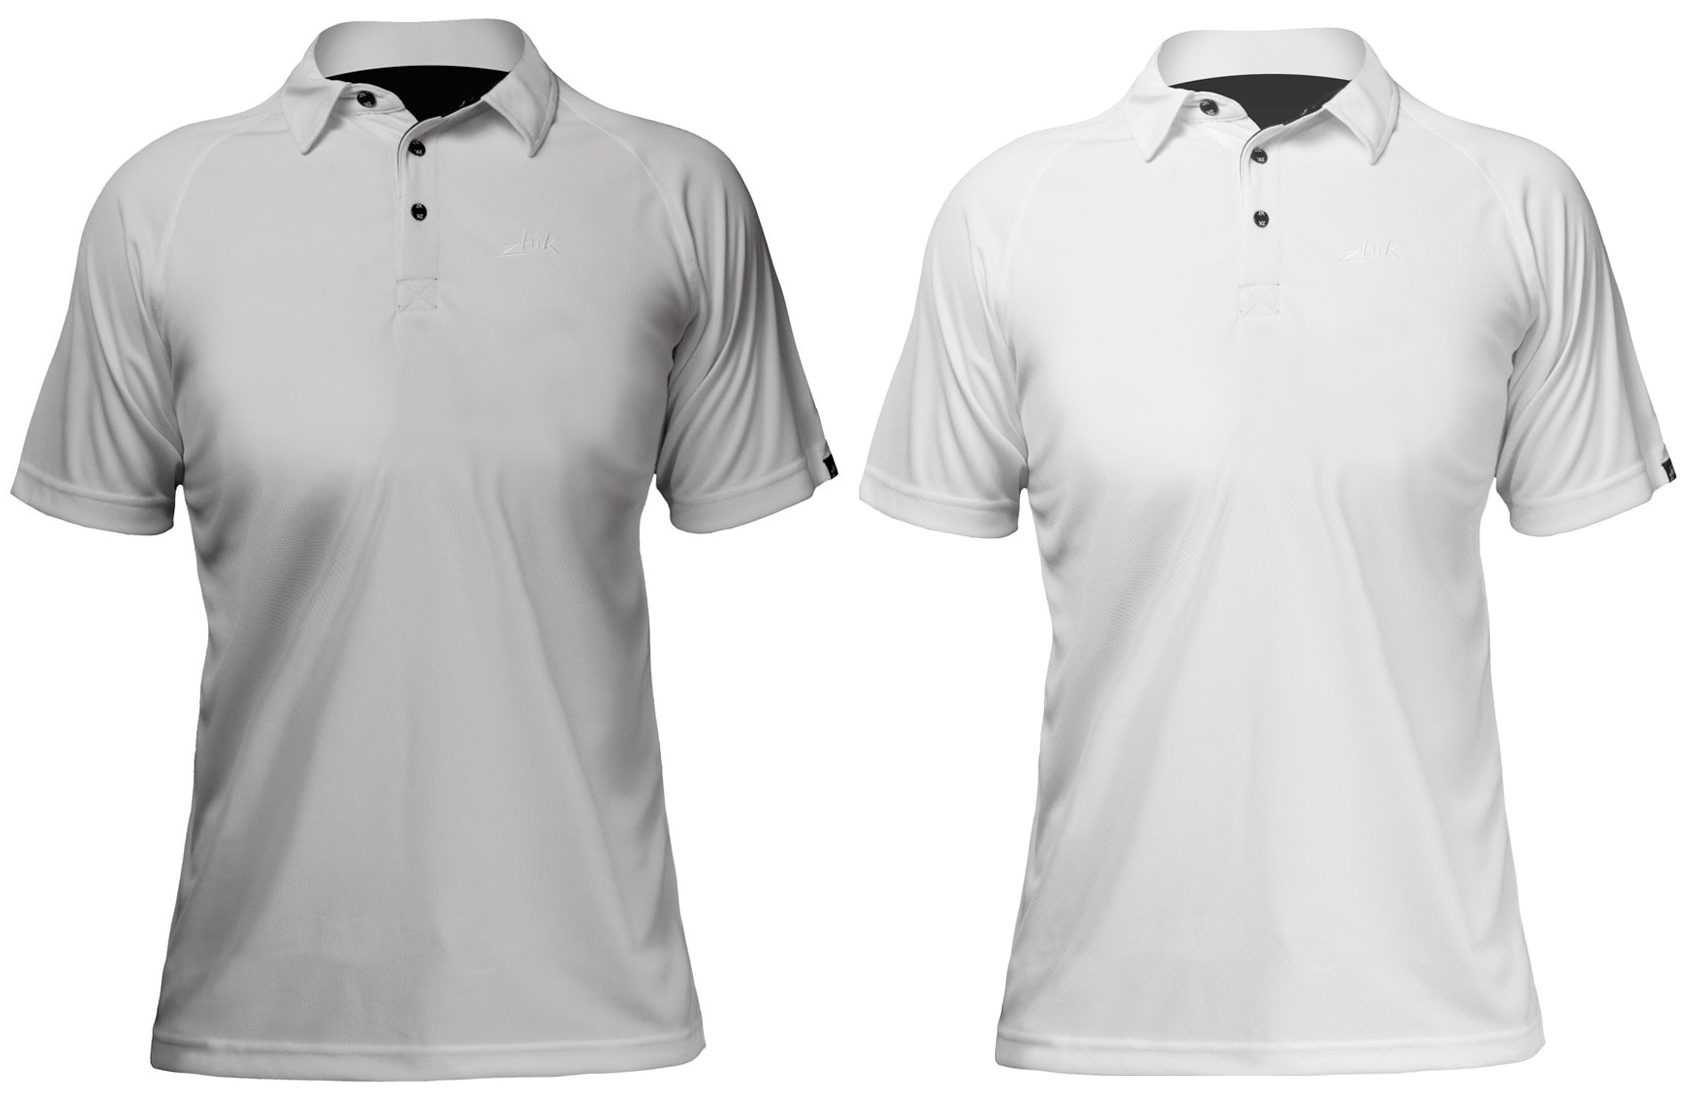 ZhikDry Short Sleeve Polo